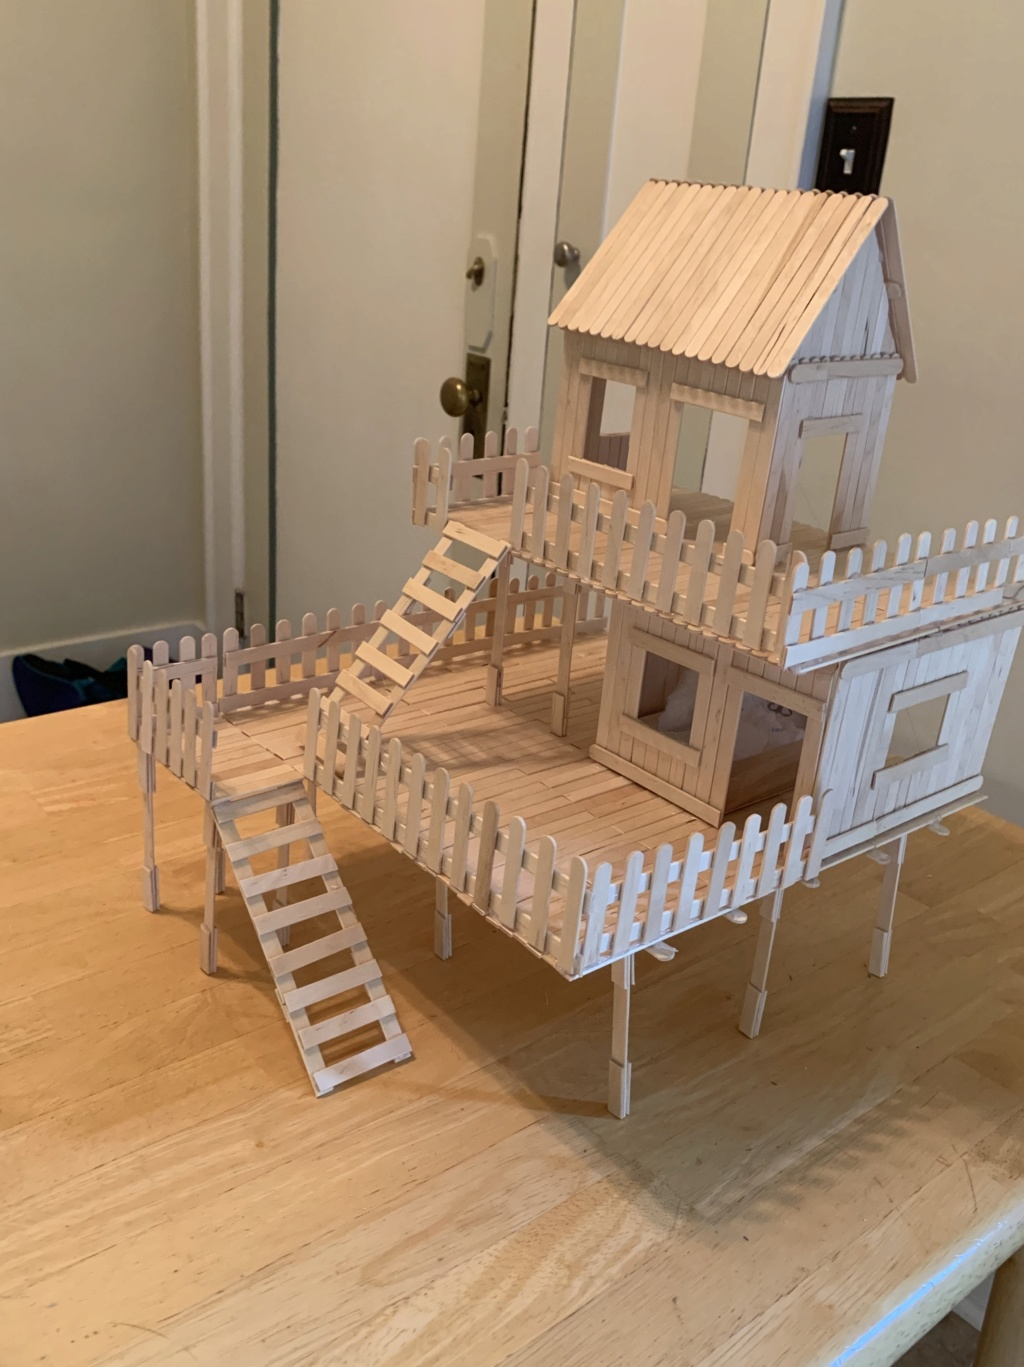 Playhouse made out of popsicle sticks Baccd810